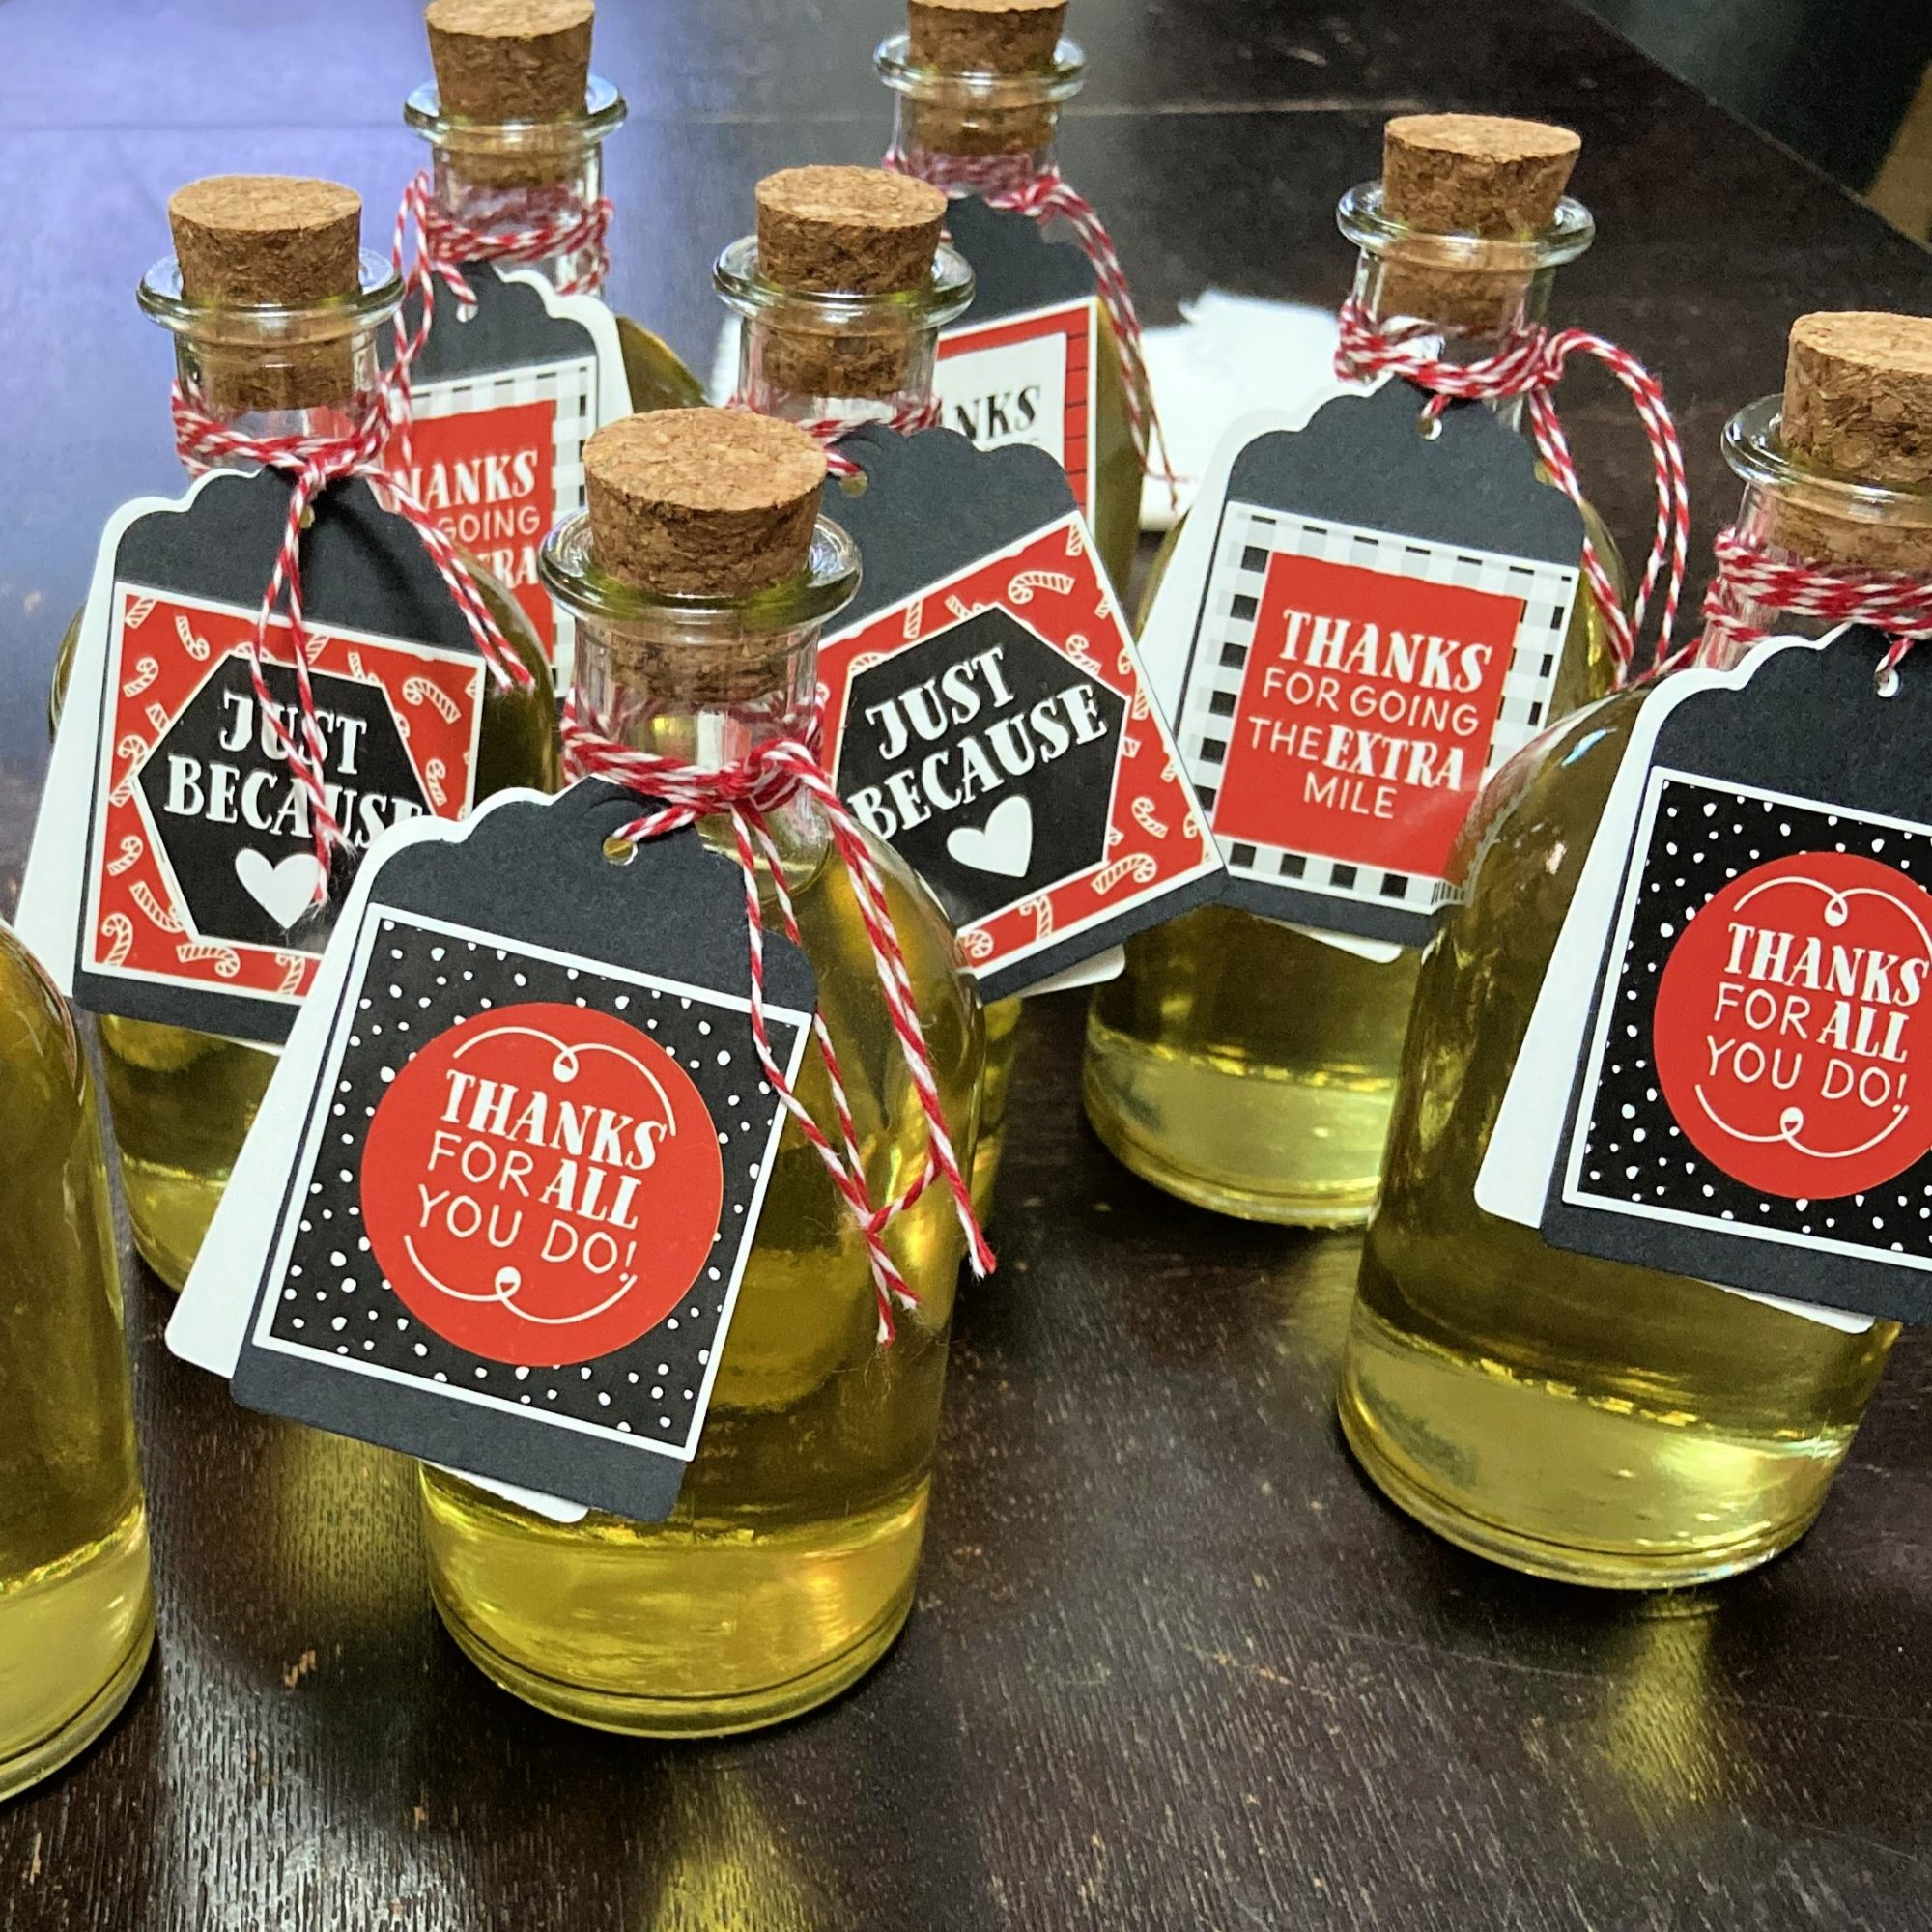 bottles of homemade limoncello liqueur with gift tags